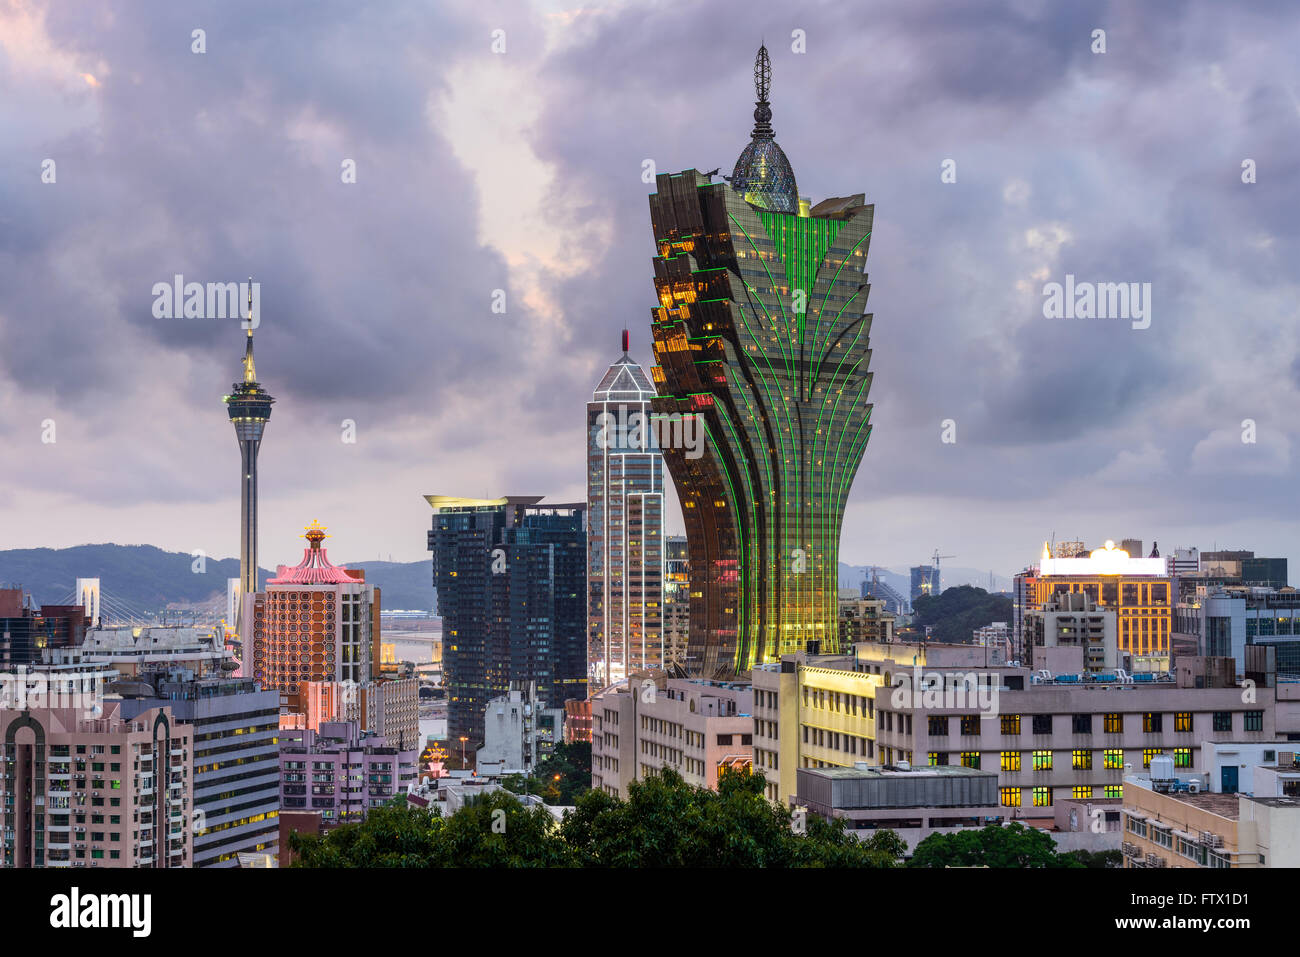 Macao, Chine sur la ville. Photo Stock